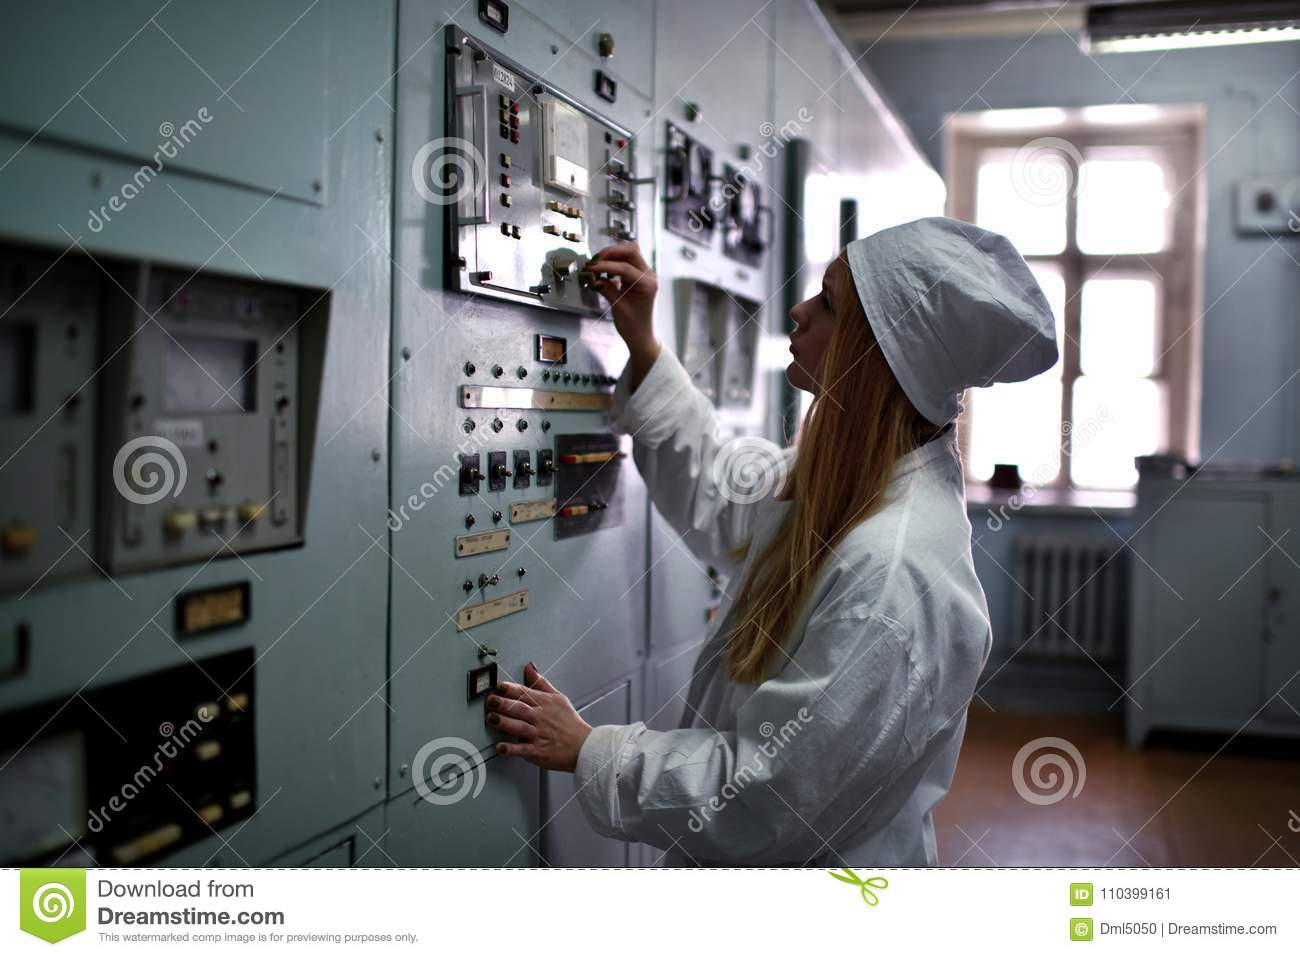 Nuclear plant engineer working at thermal power plant